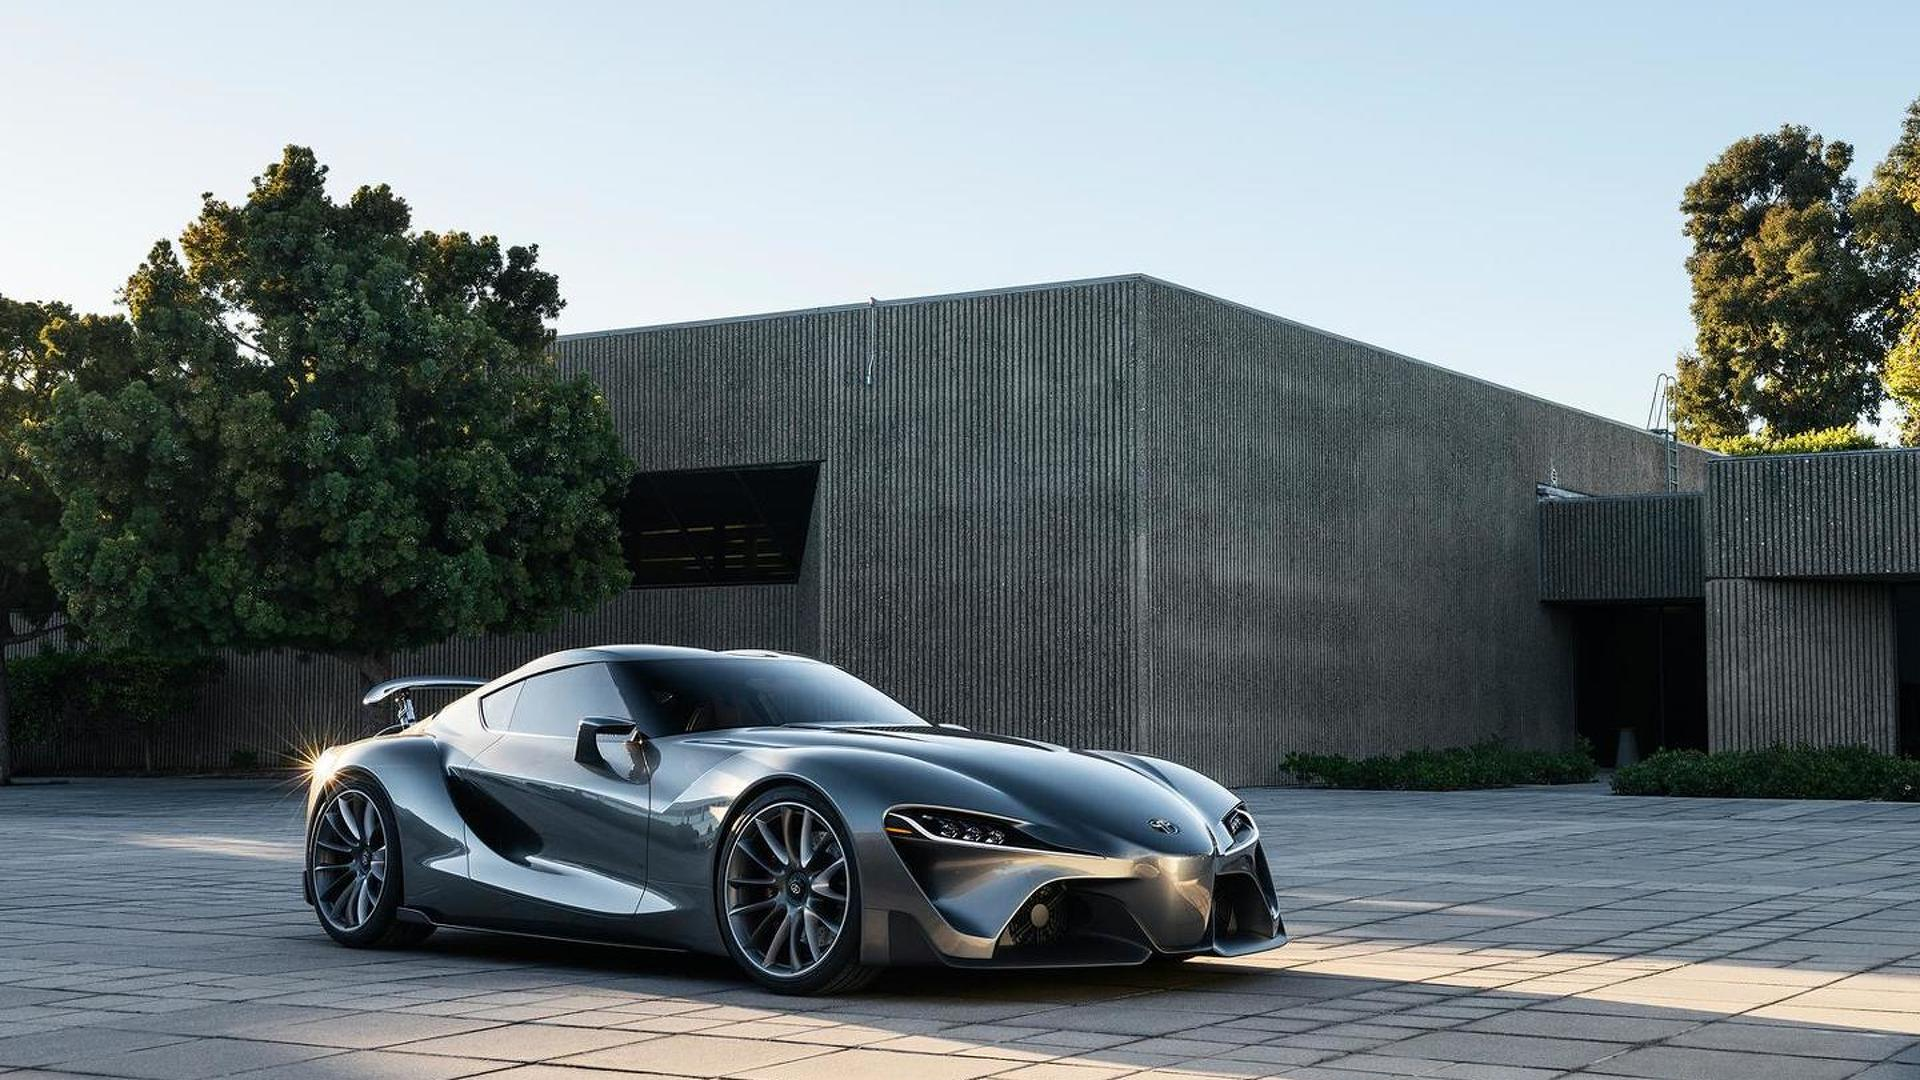 2016 Toyota Supra >> Toyota Confirms Supra Revival Concept For 2016 Reveal